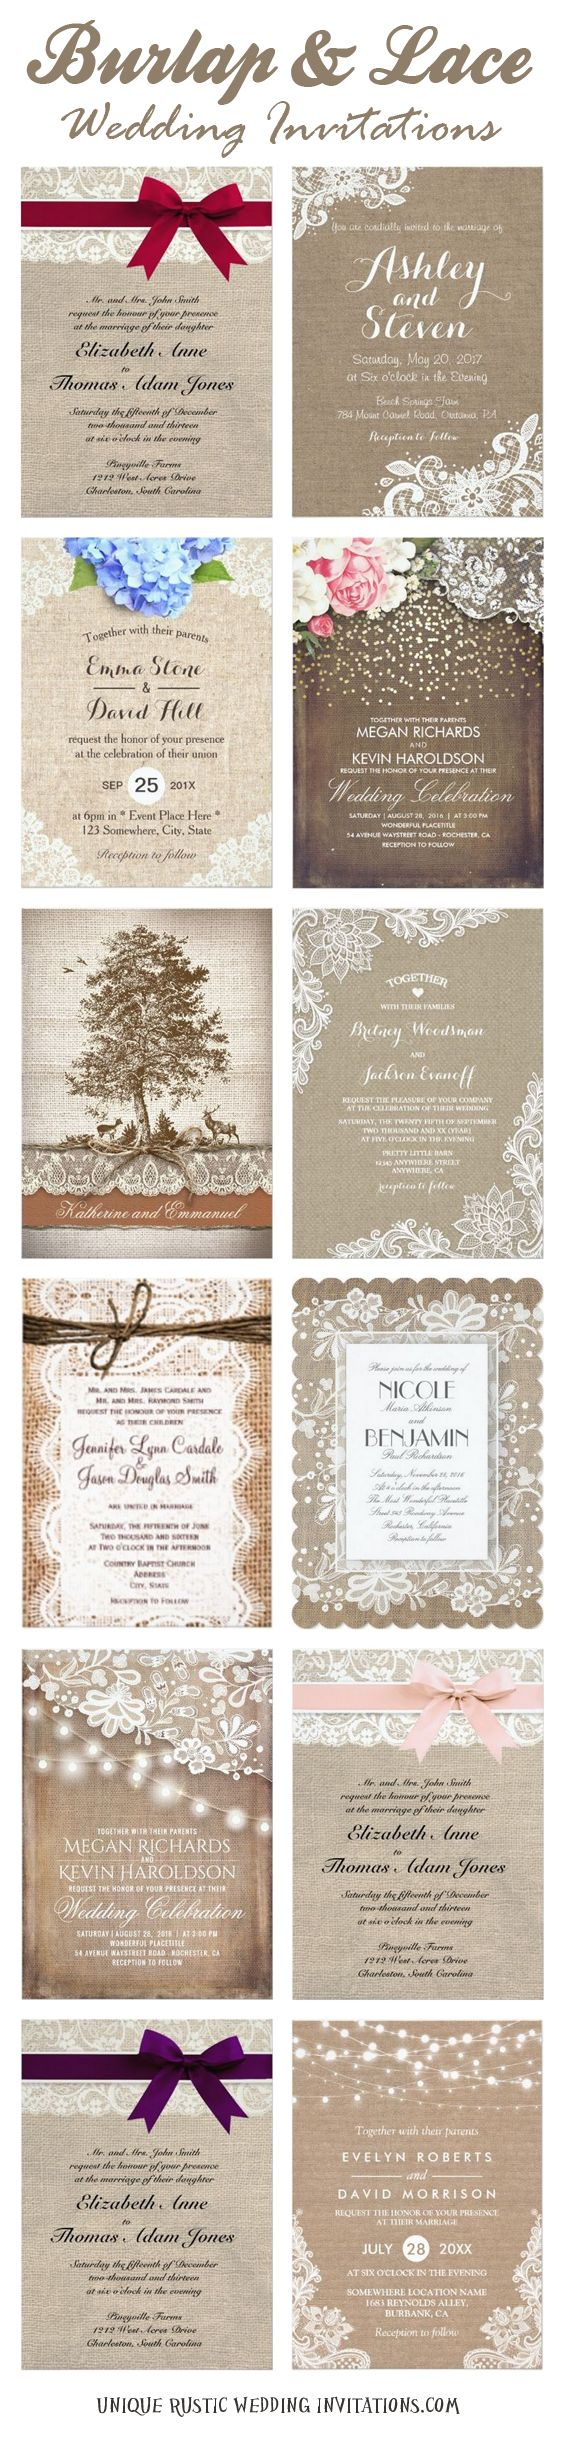 sunflower wedding invitations printable%0A Burlap and Lace Wedding Invitations  rusticwedding  rusticweddinginvitations